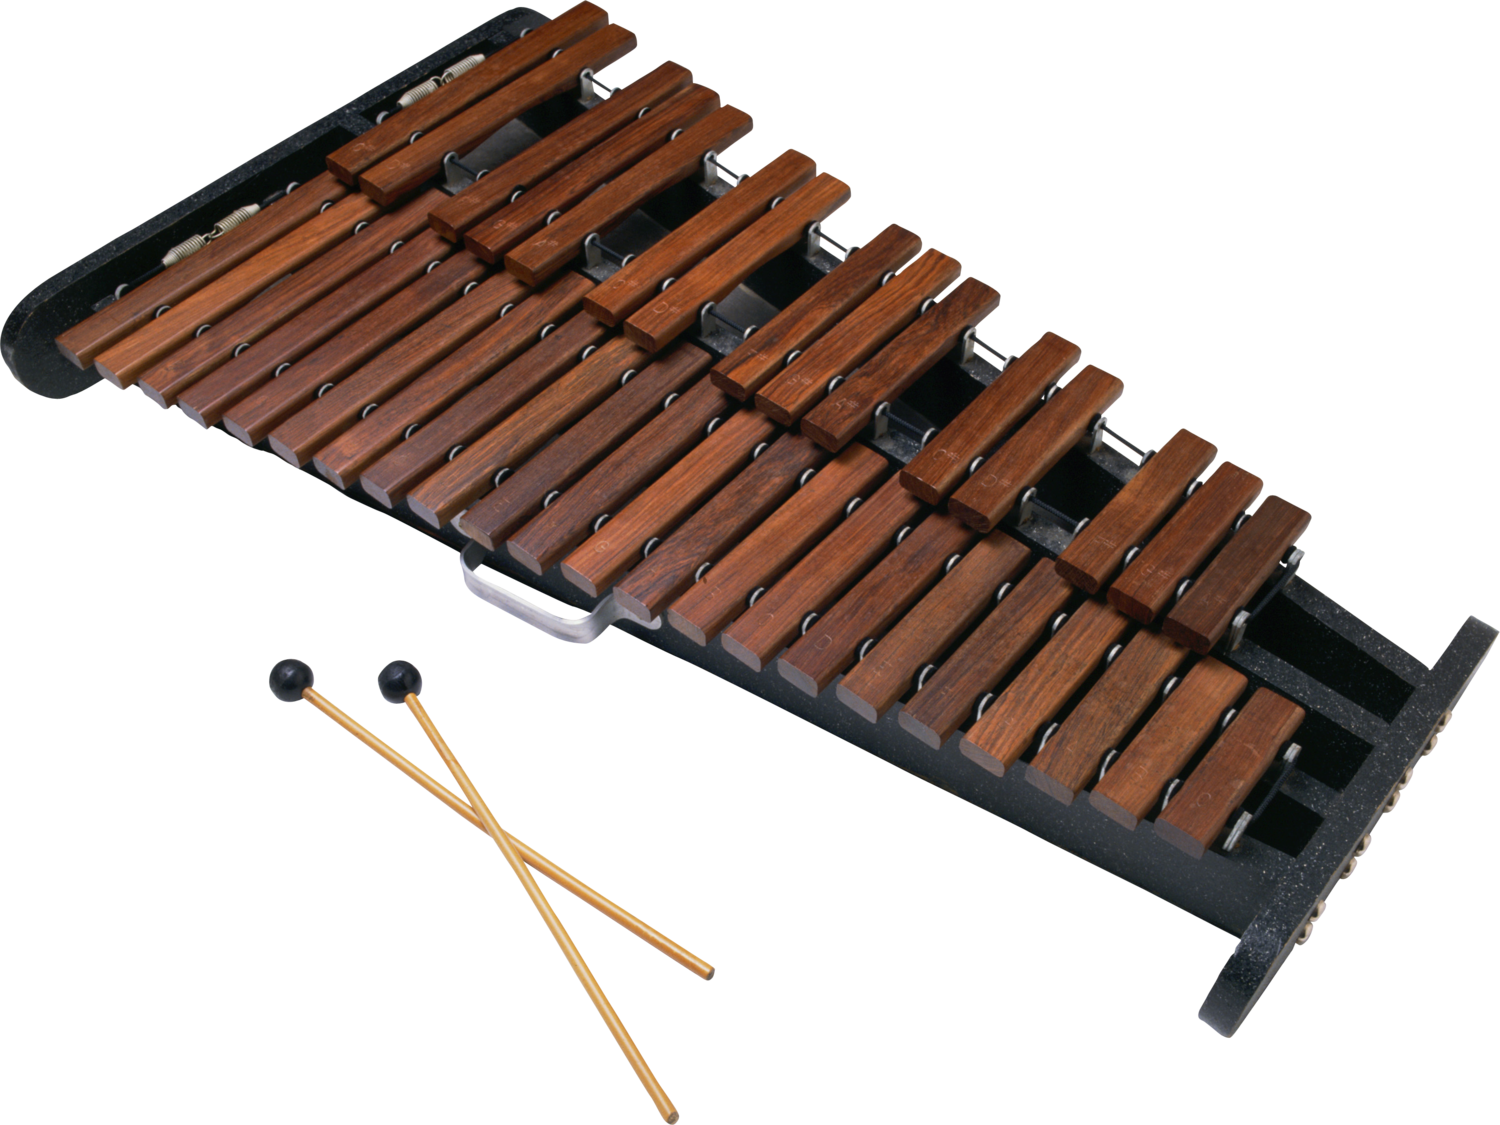 Xylophone clipart mallet. Musical instruments percussion glockenspiel